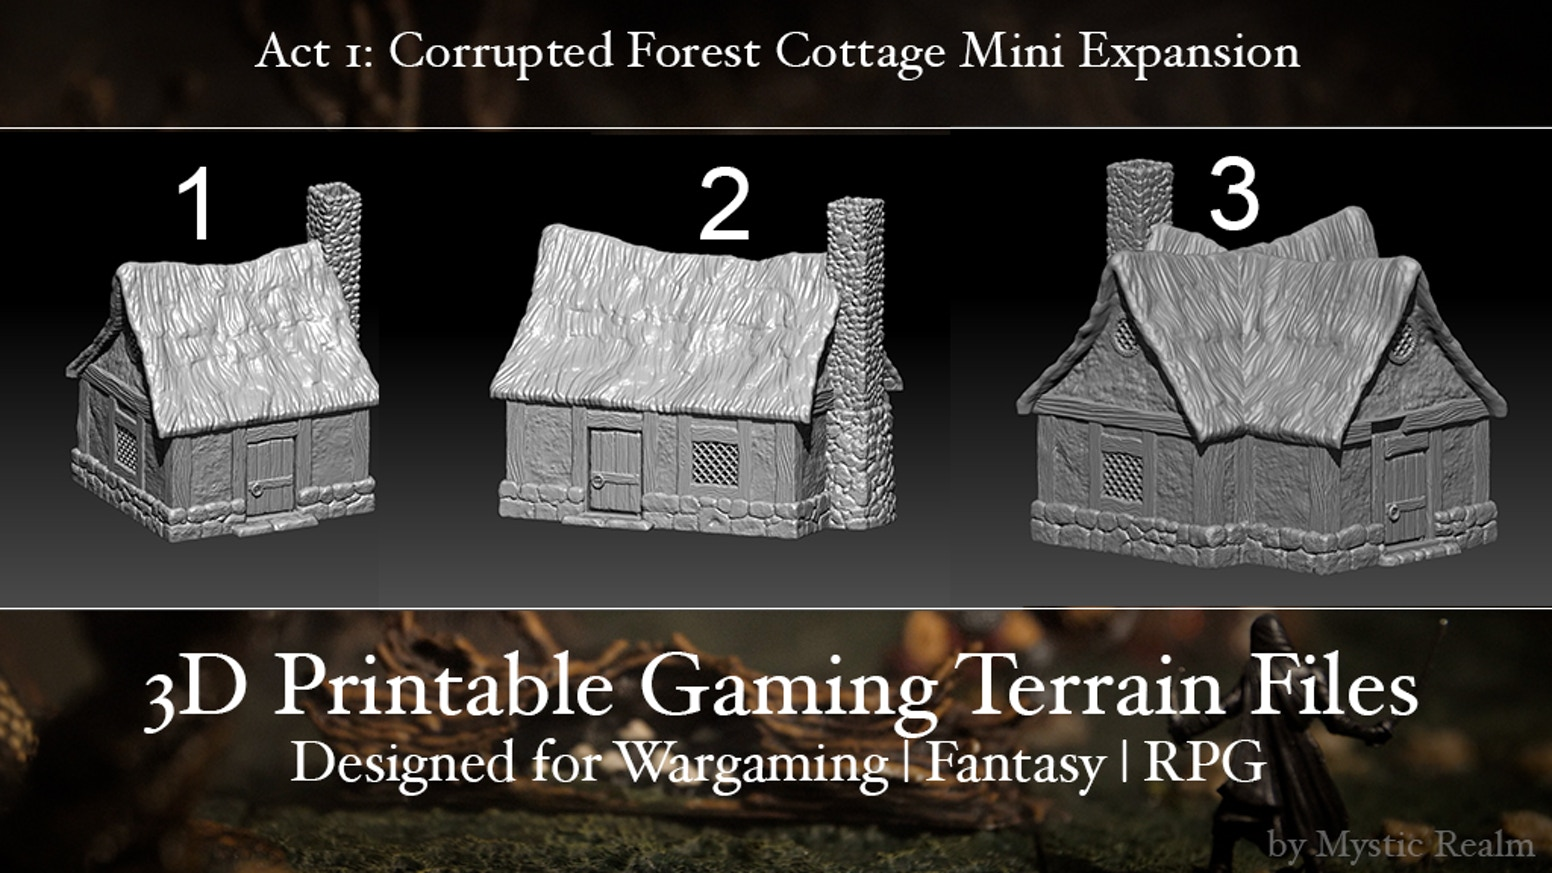 28mm miniature home tabletop gaming terrain for Fantasy RPG & Wargaming - 3D printable STL villiage house files - Print, Paint & Play!